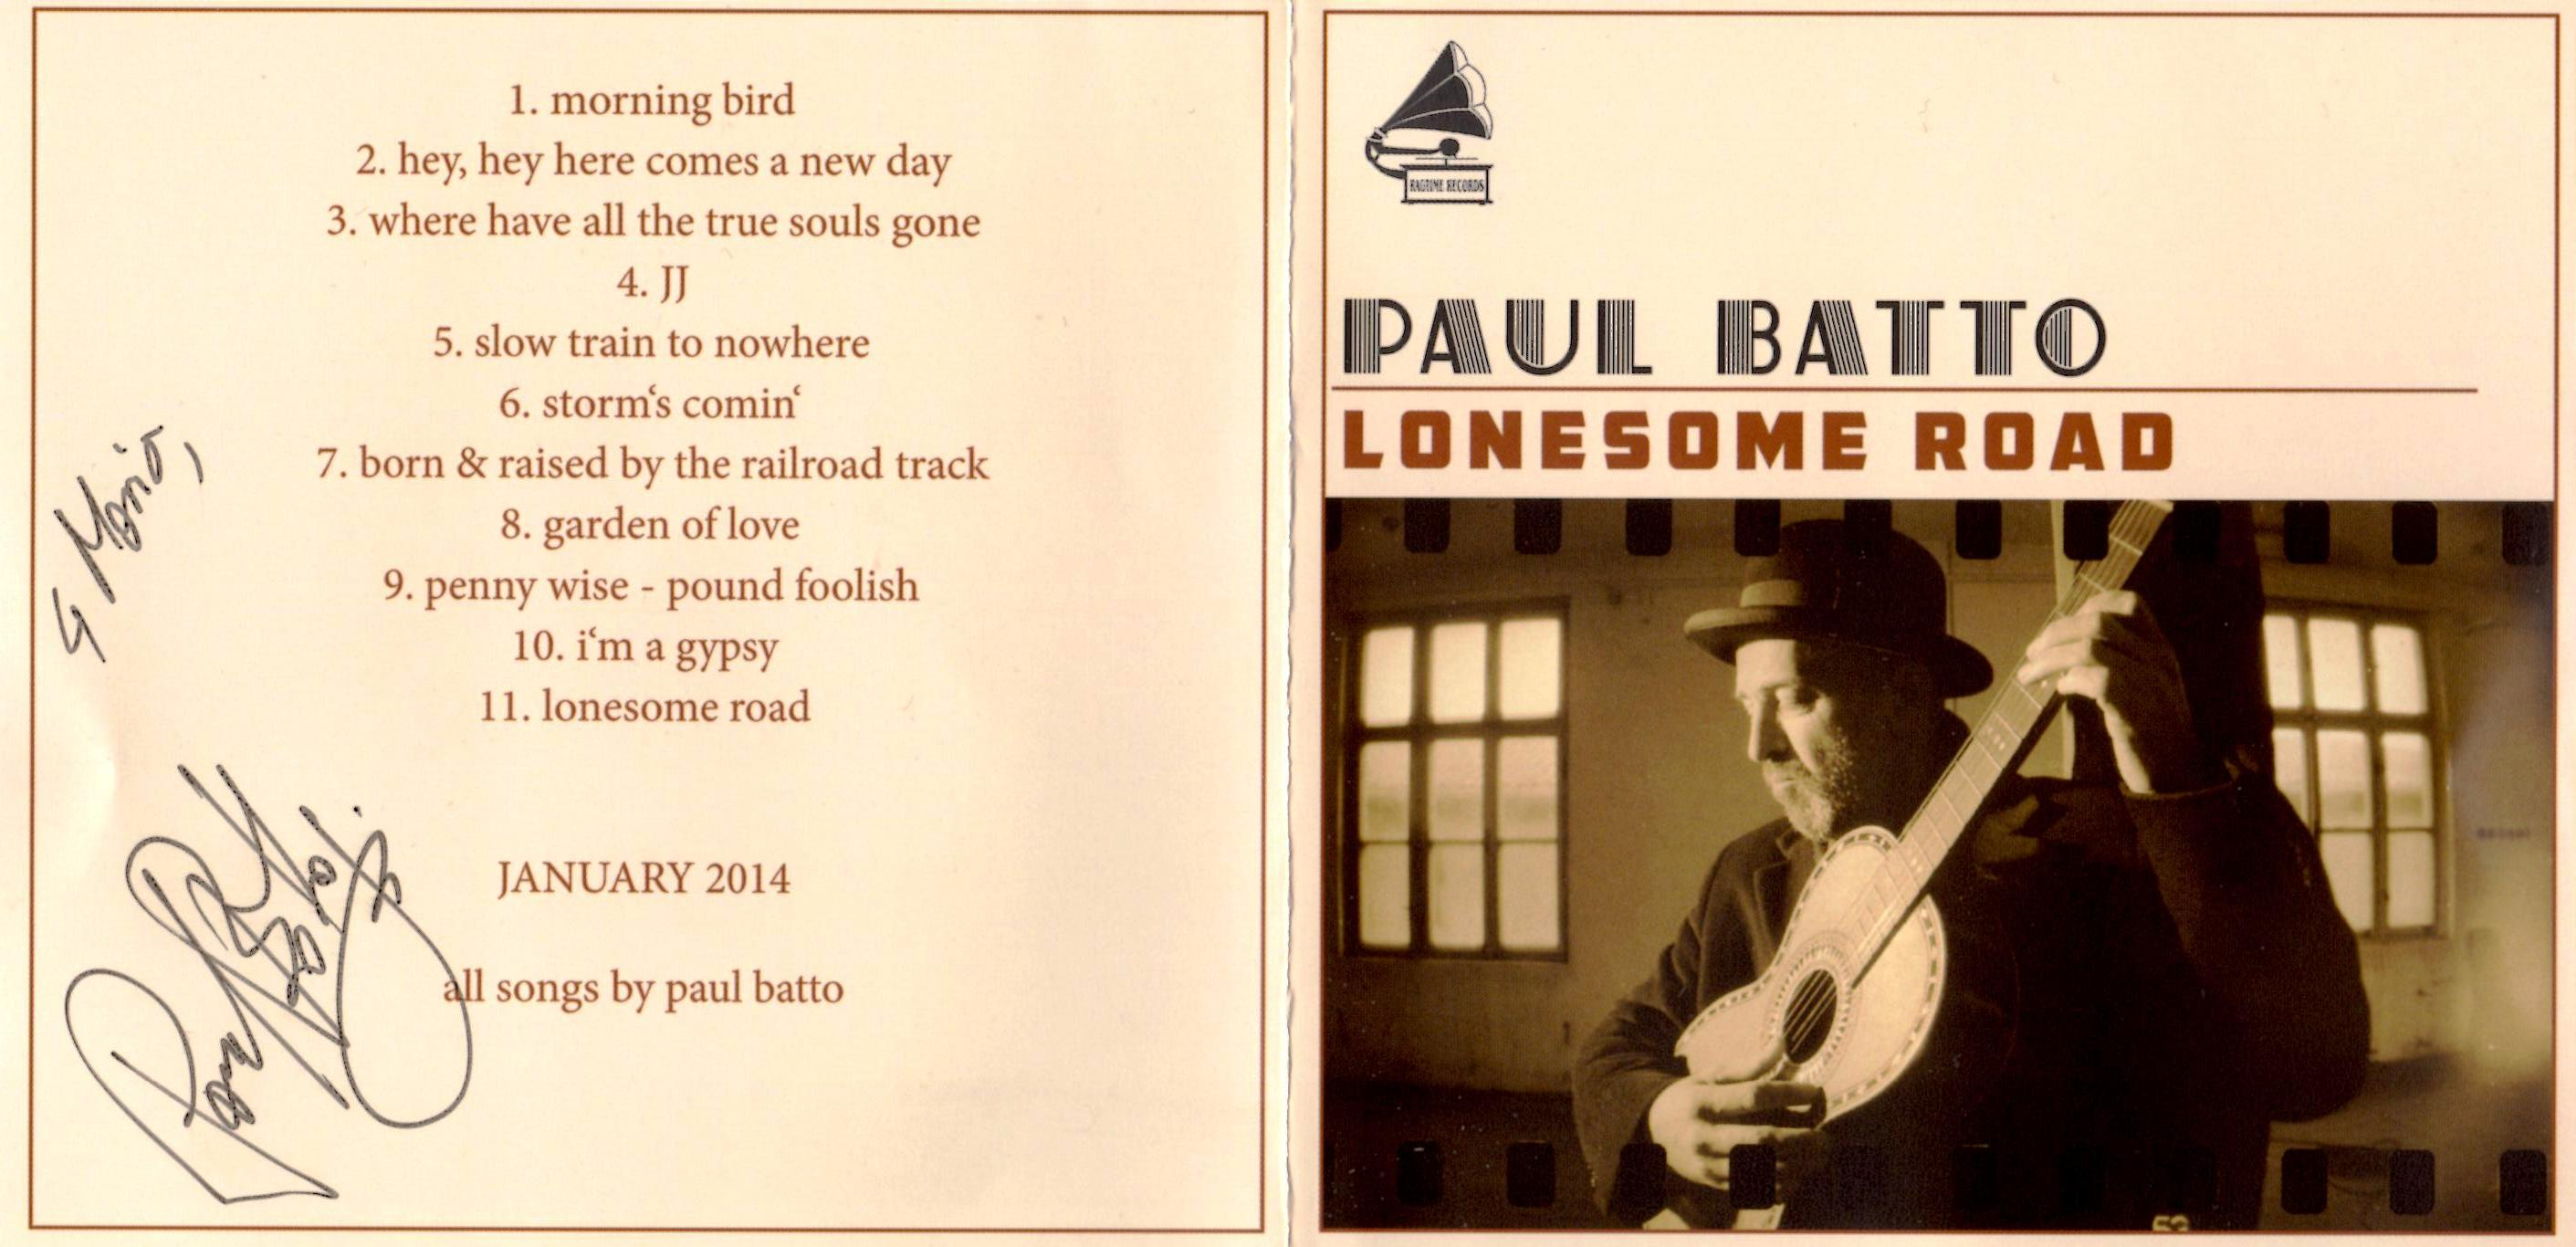 Paul Batto: Lonesome Road